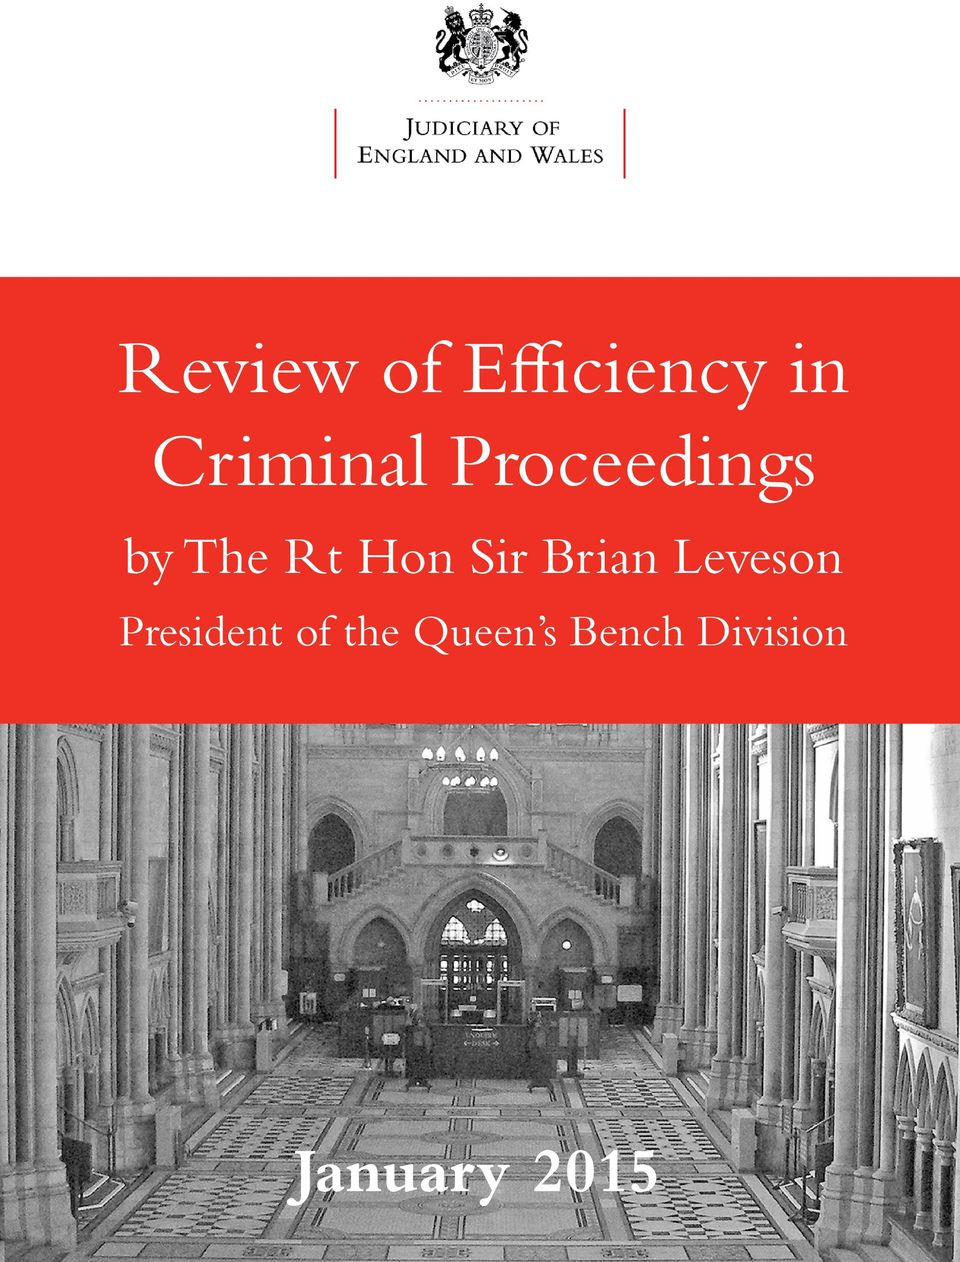 Brian Leveson President of the